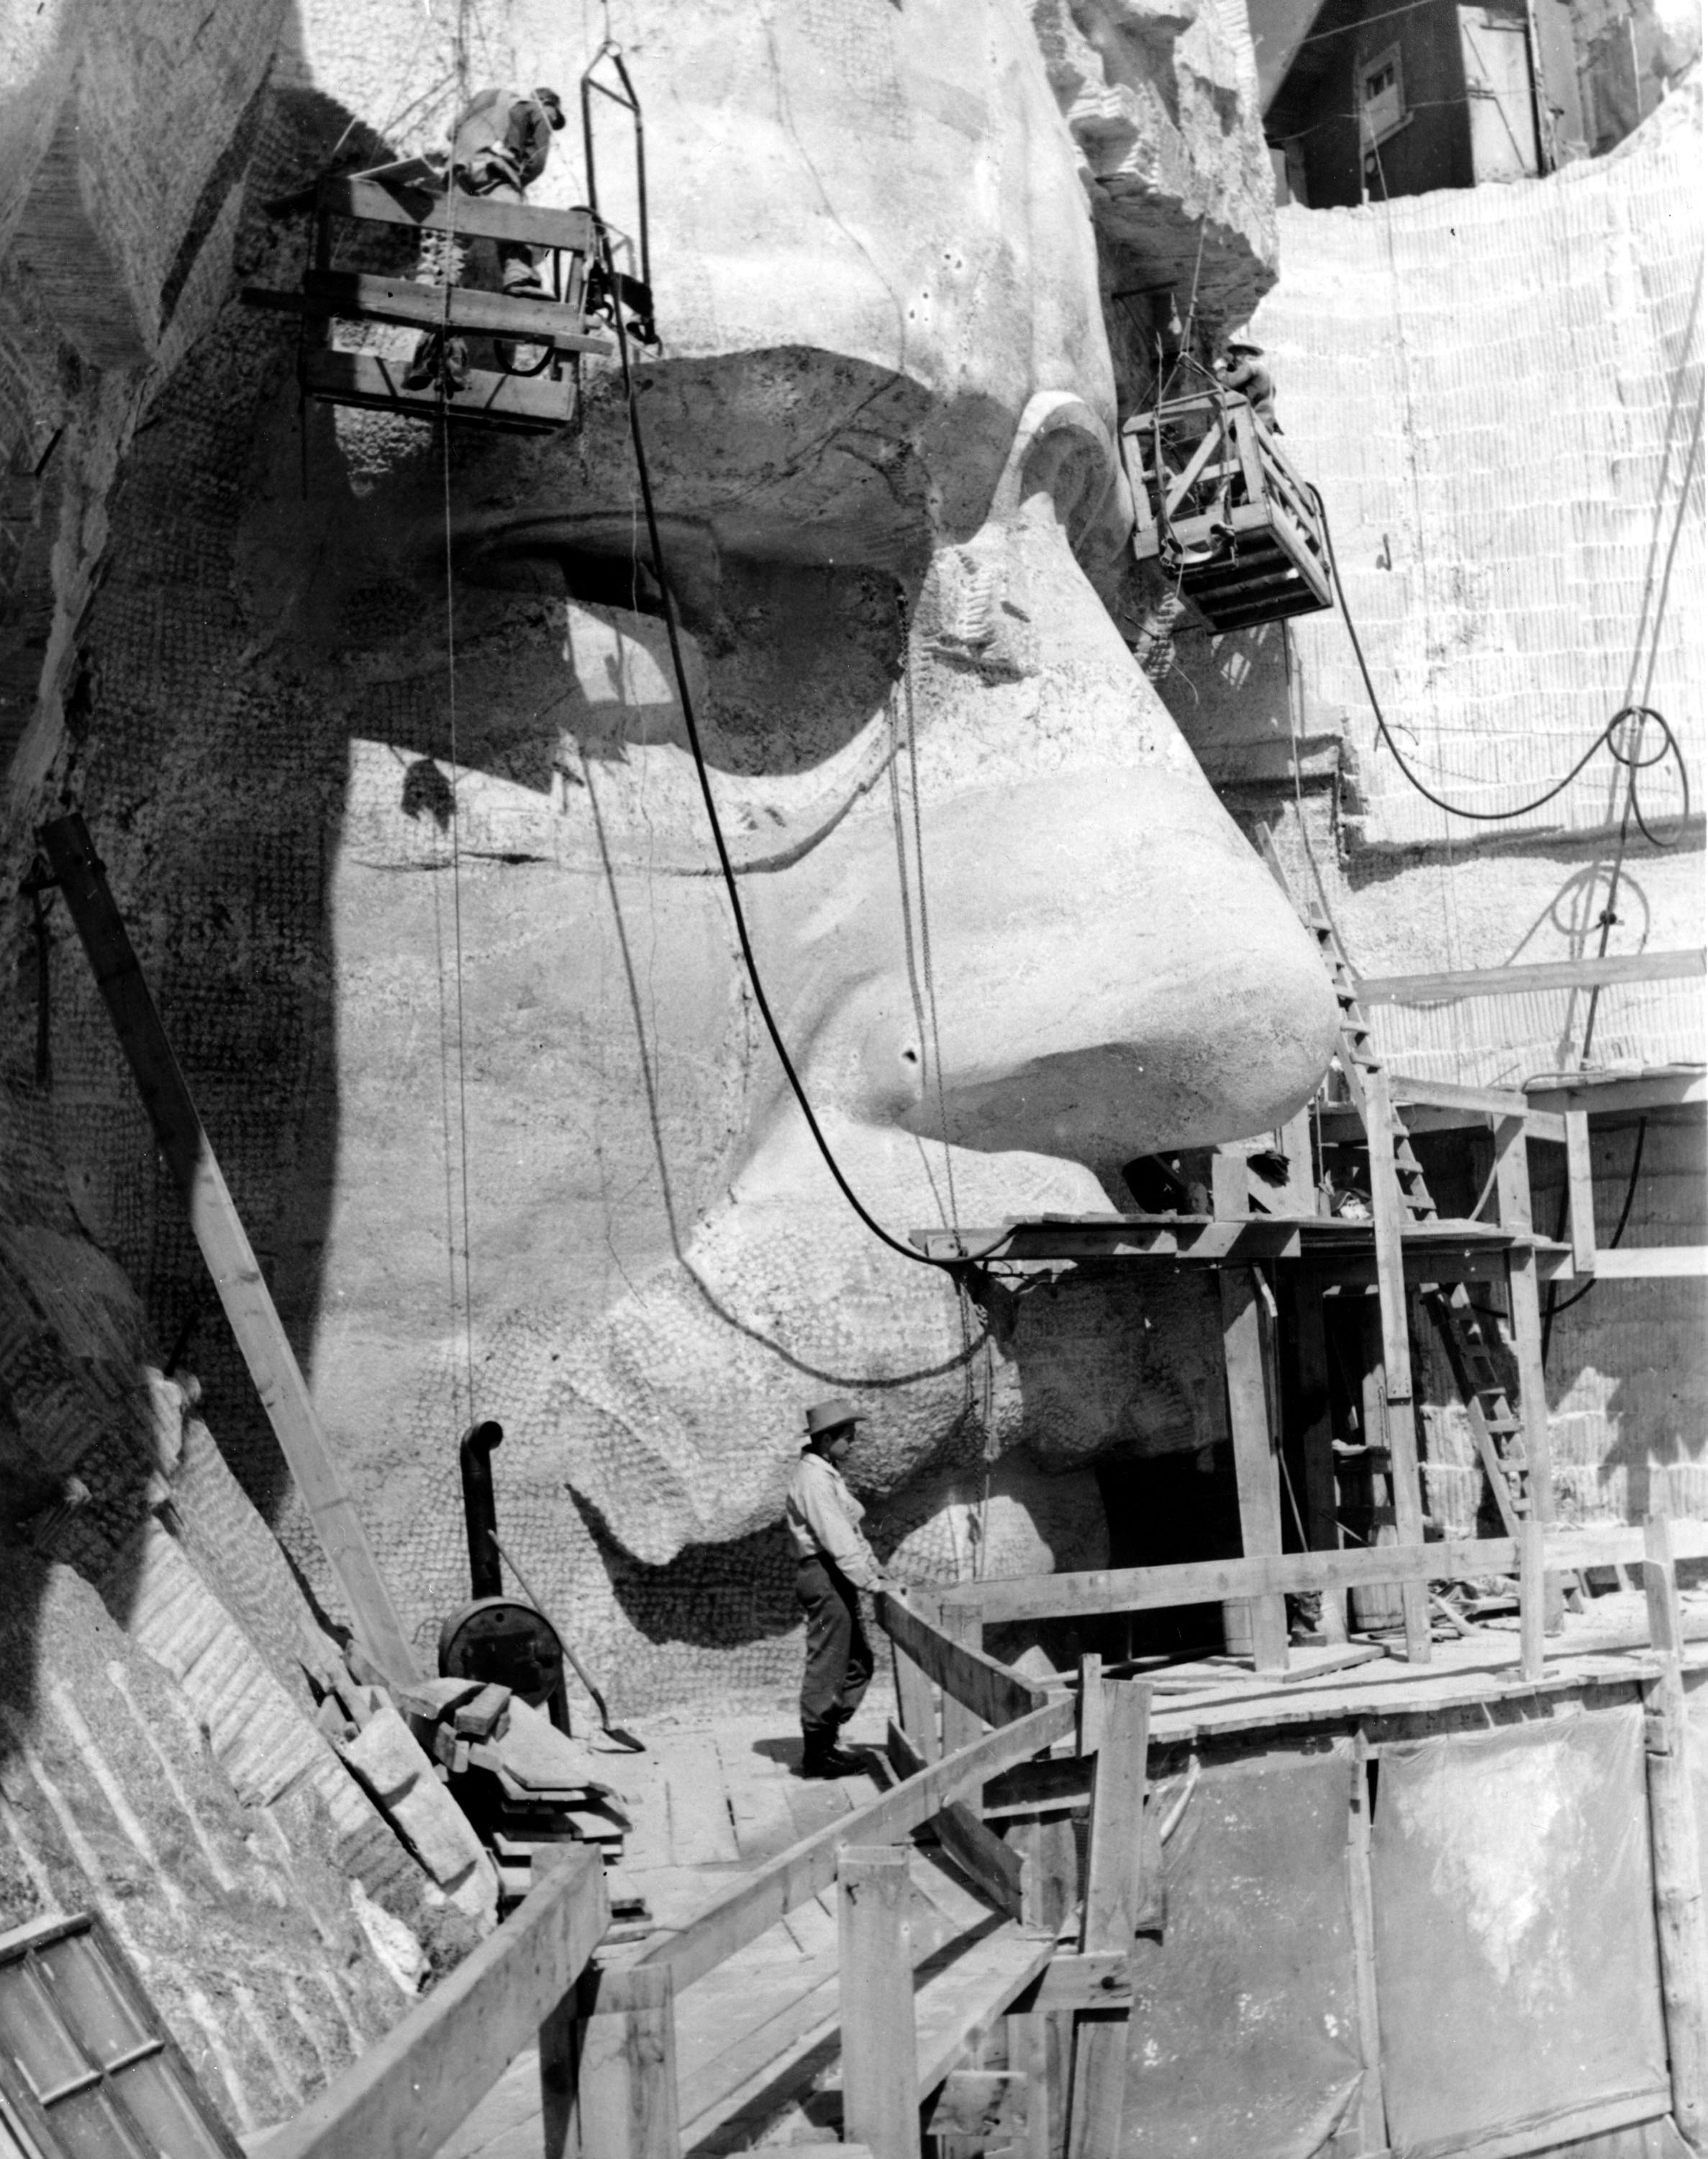 Sculptor Lincoln Borglum on the scaffold below the stone face of U.S. President Theodore Roosevelt on the Mount Rushmore Memorial in the Black Hills area of Keystone, S.D., April, 1944.